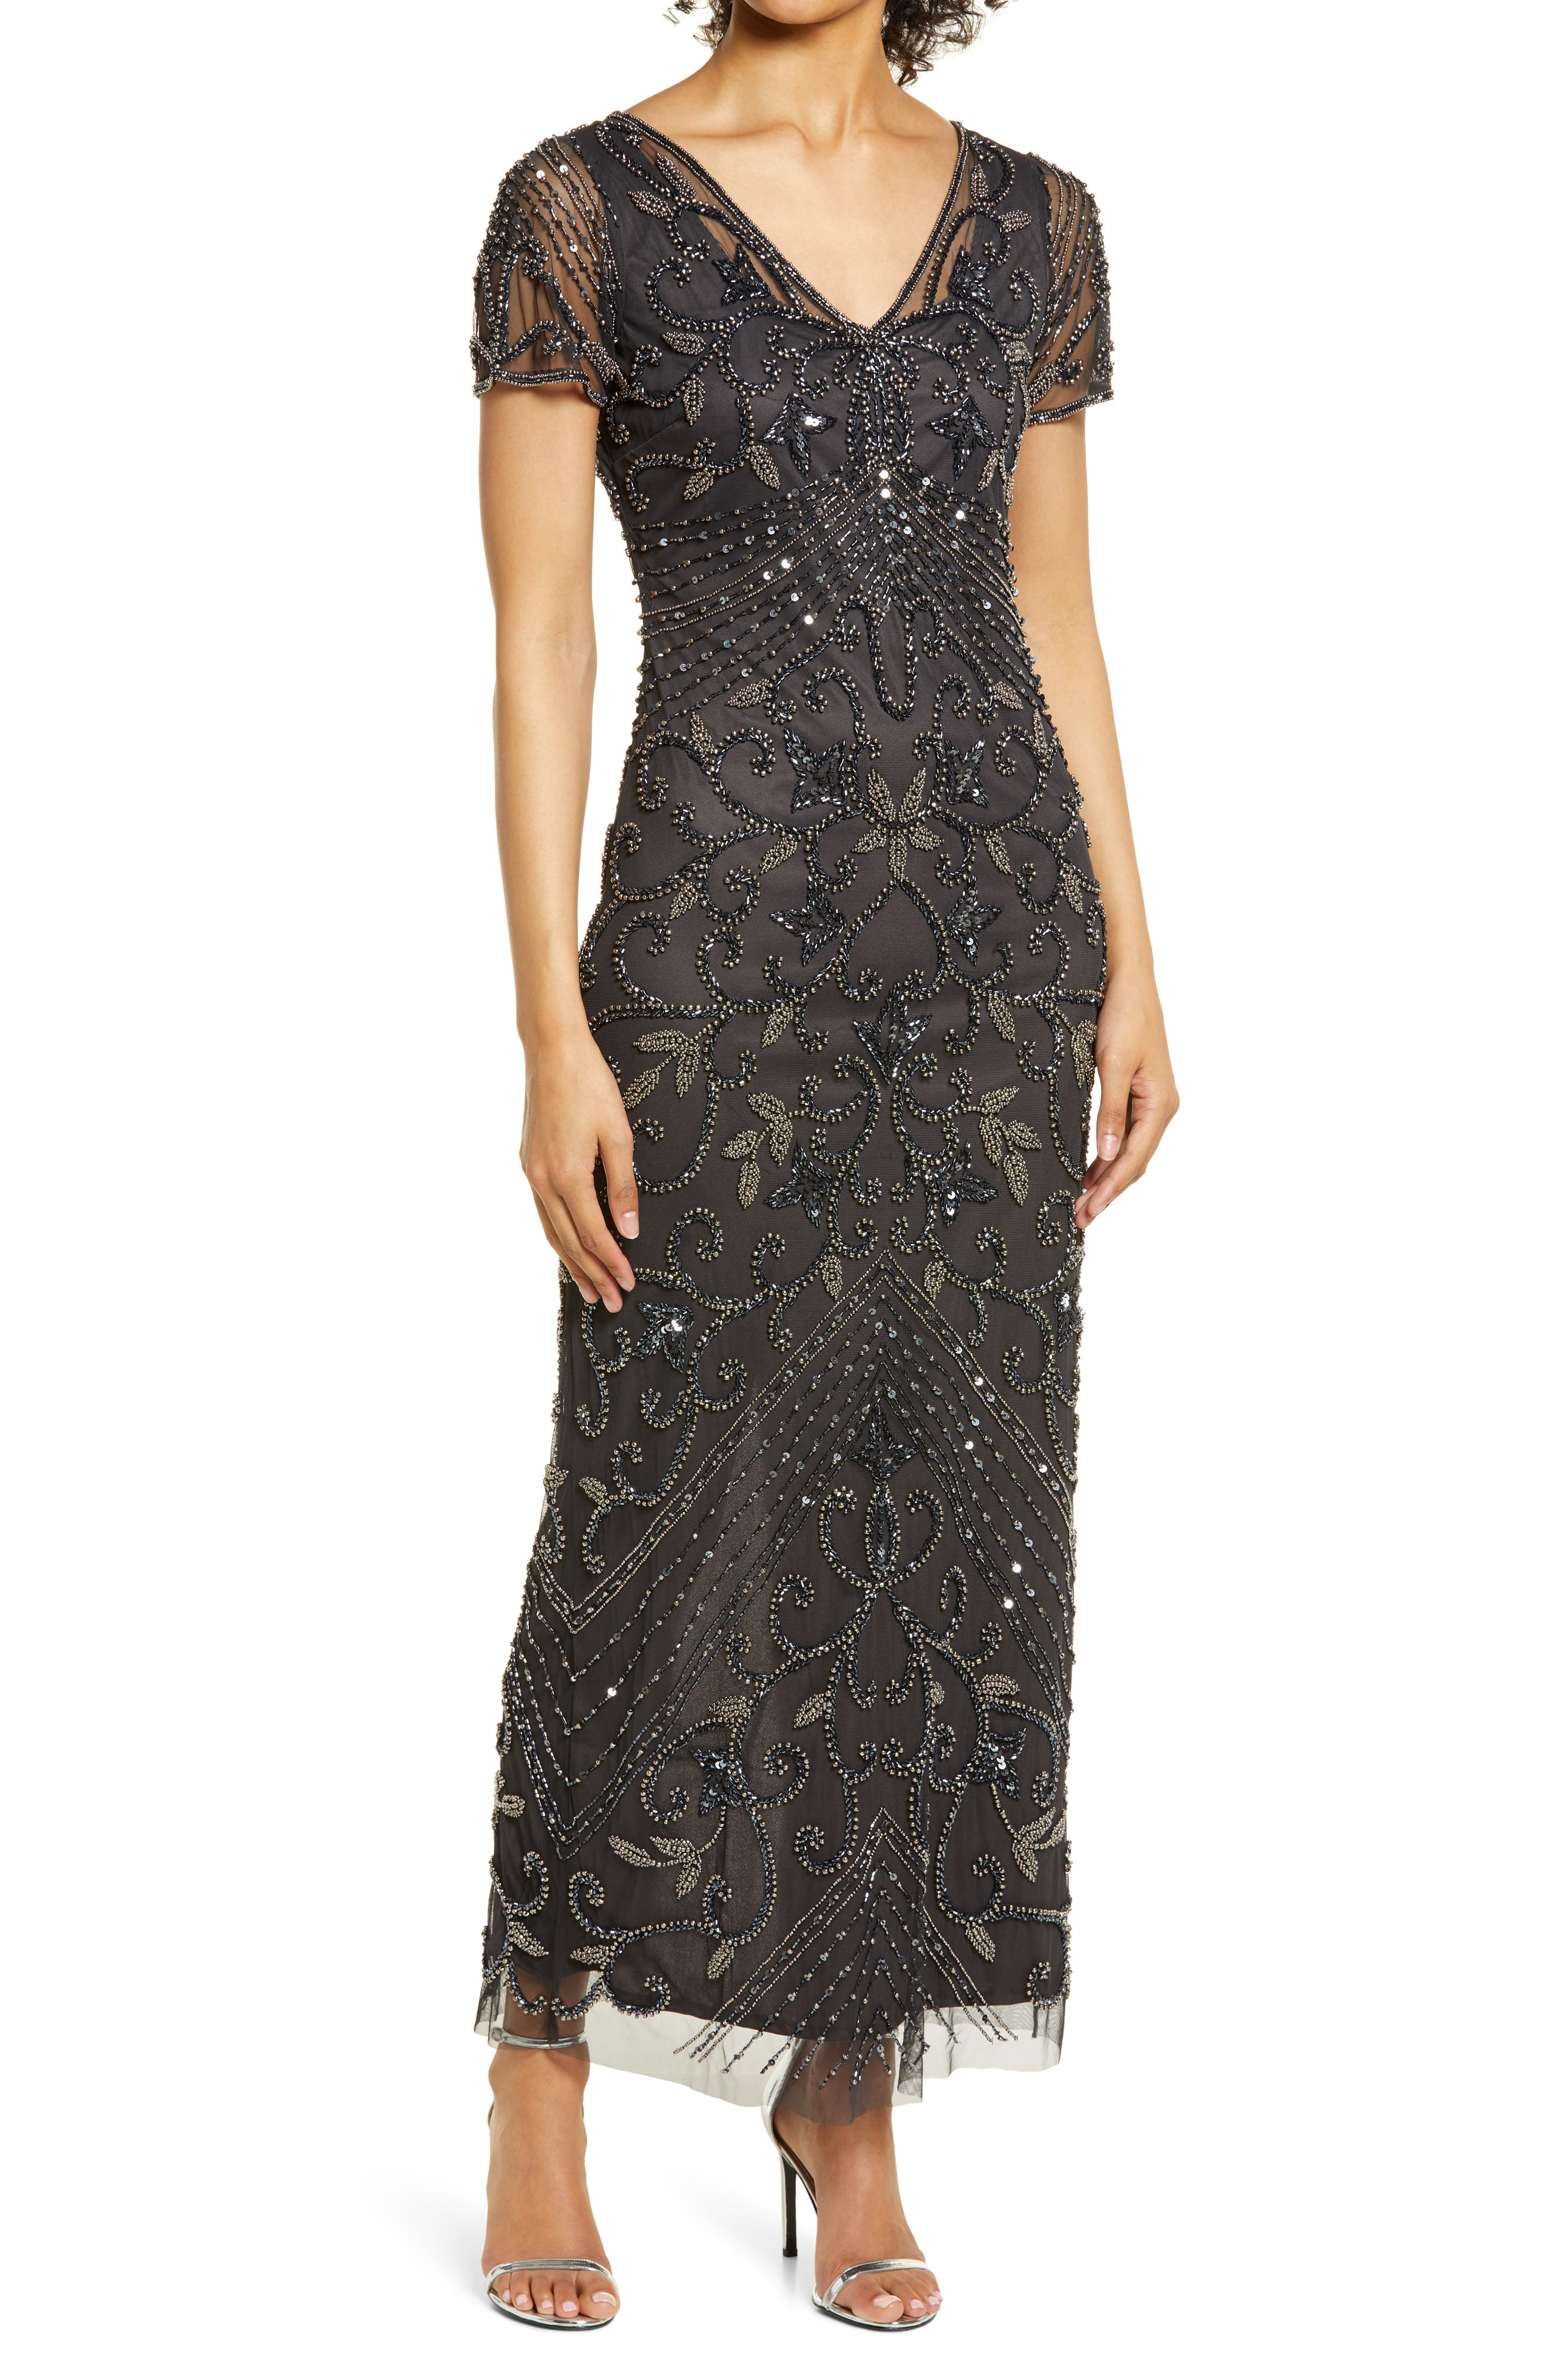 Vintage 1920s Dresses – Where to Buy Womens Pisarro Nights Beaded Mesh Column Gown Size 12 - Grey $238.00 AT vintagedancer.com